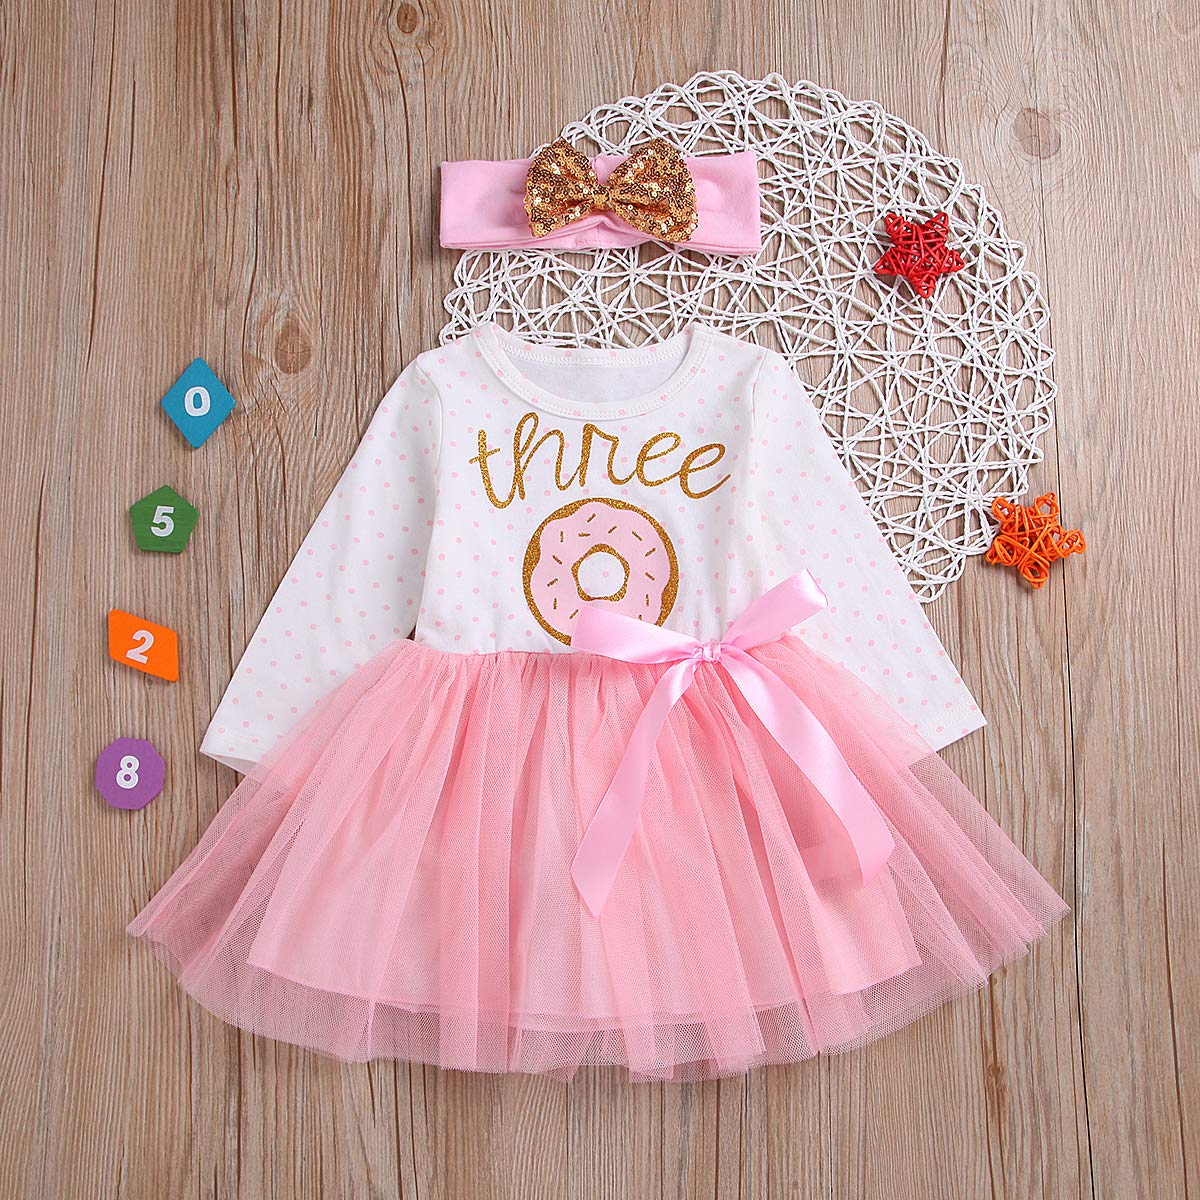 2Pcs Baby Girls Tutu Dress 1st Birthday Sleeveless Stripe Donut Romper Top Lace Skirt with Headband Outfit Summer Clothes